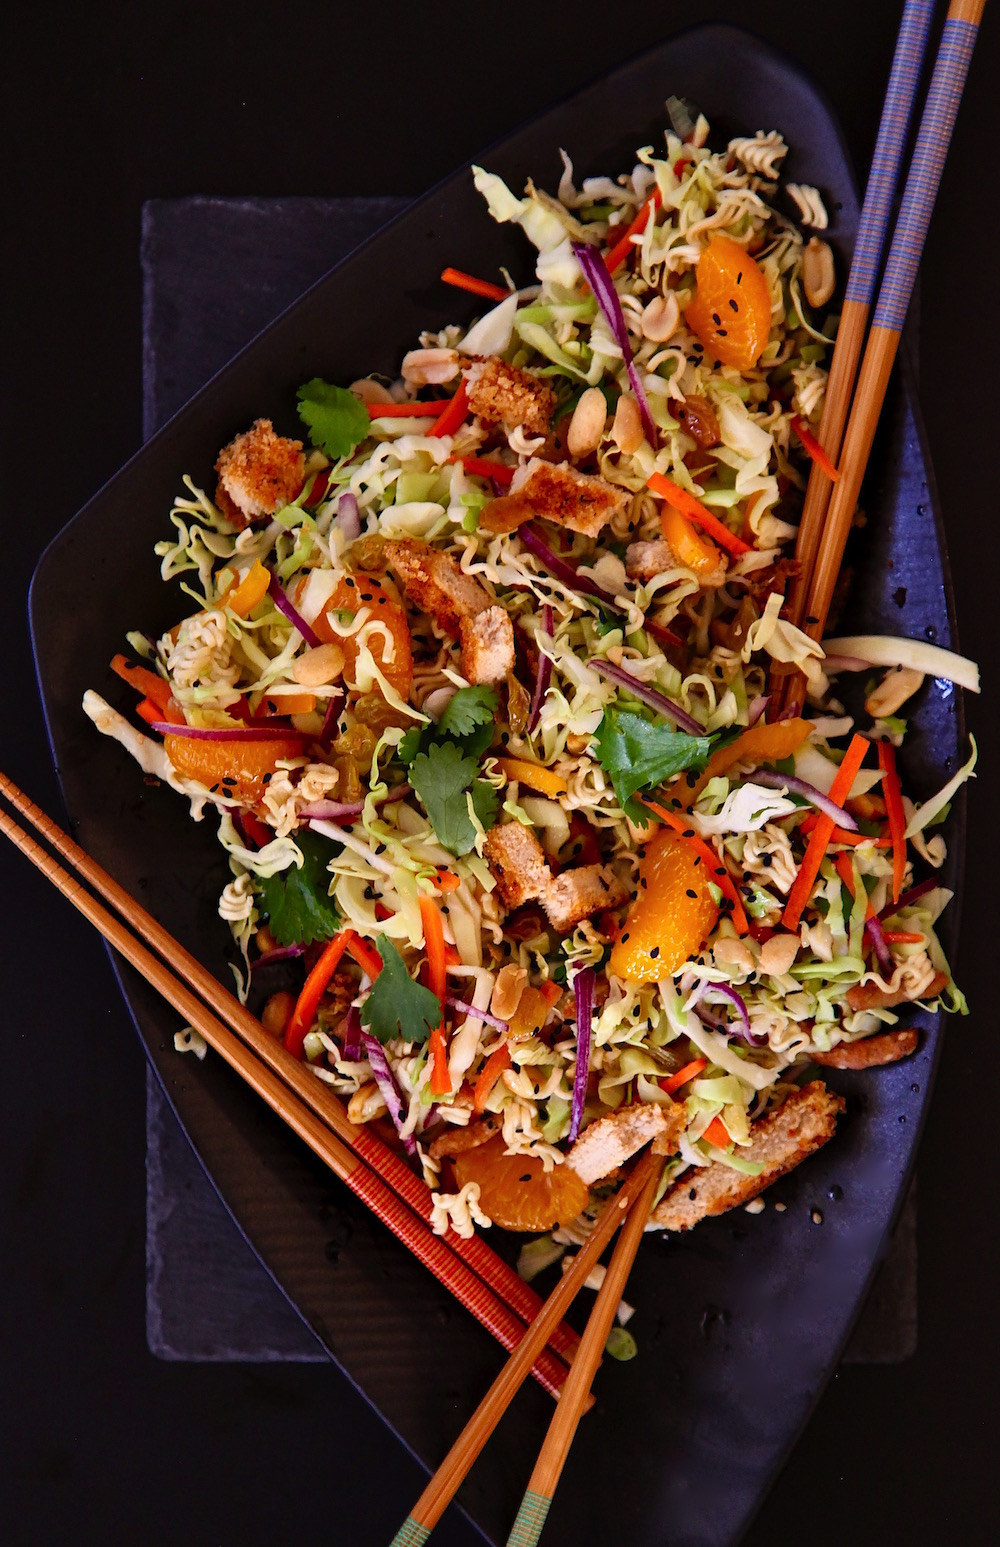 Meatless Sesame Cabbage Salad